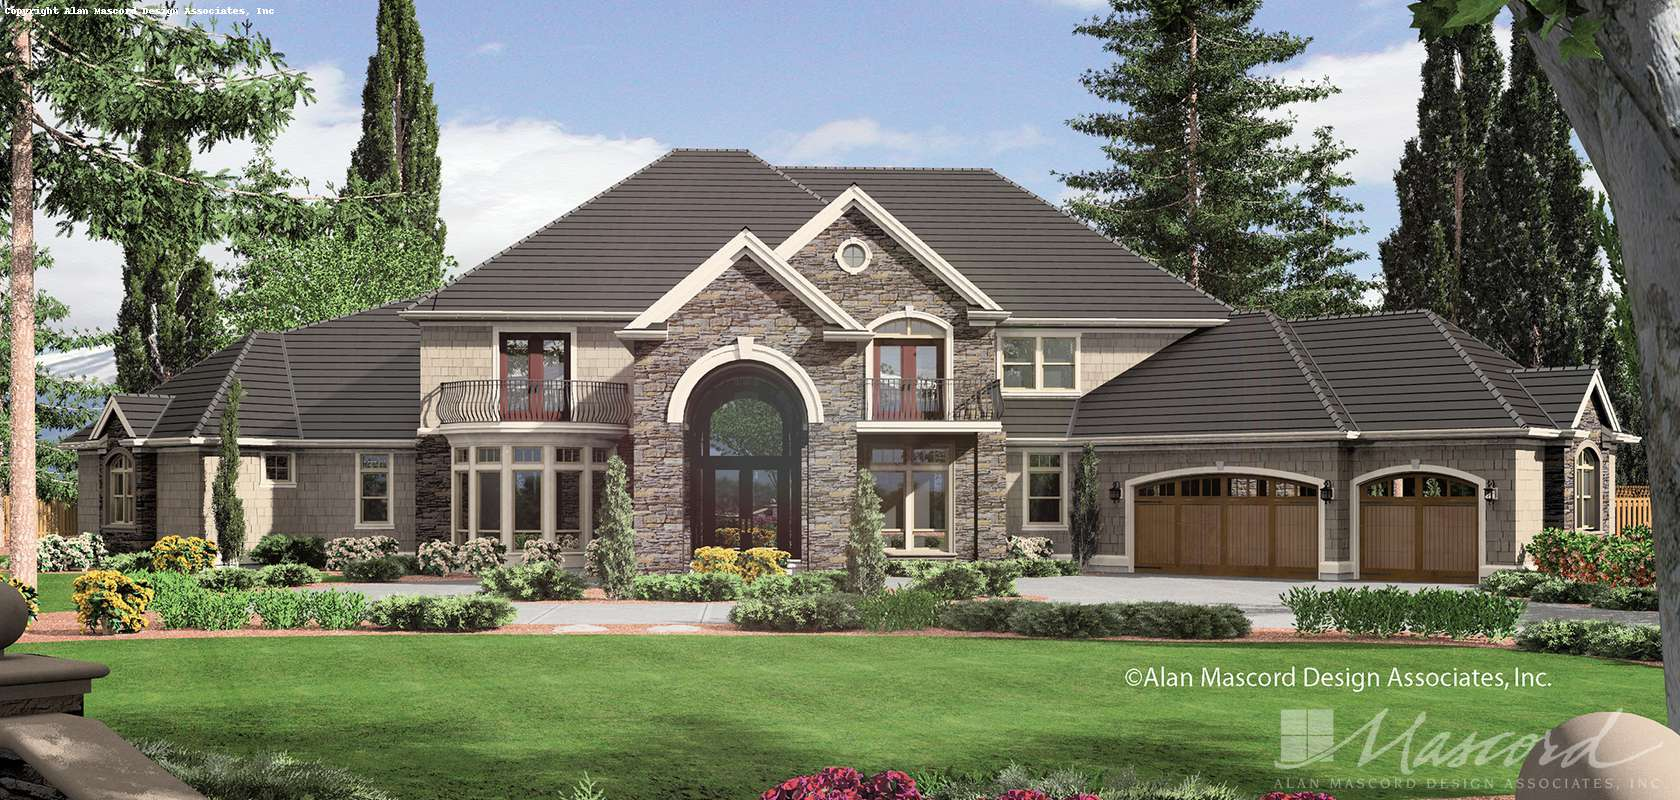 Mascord House Plan 2435: The Holden